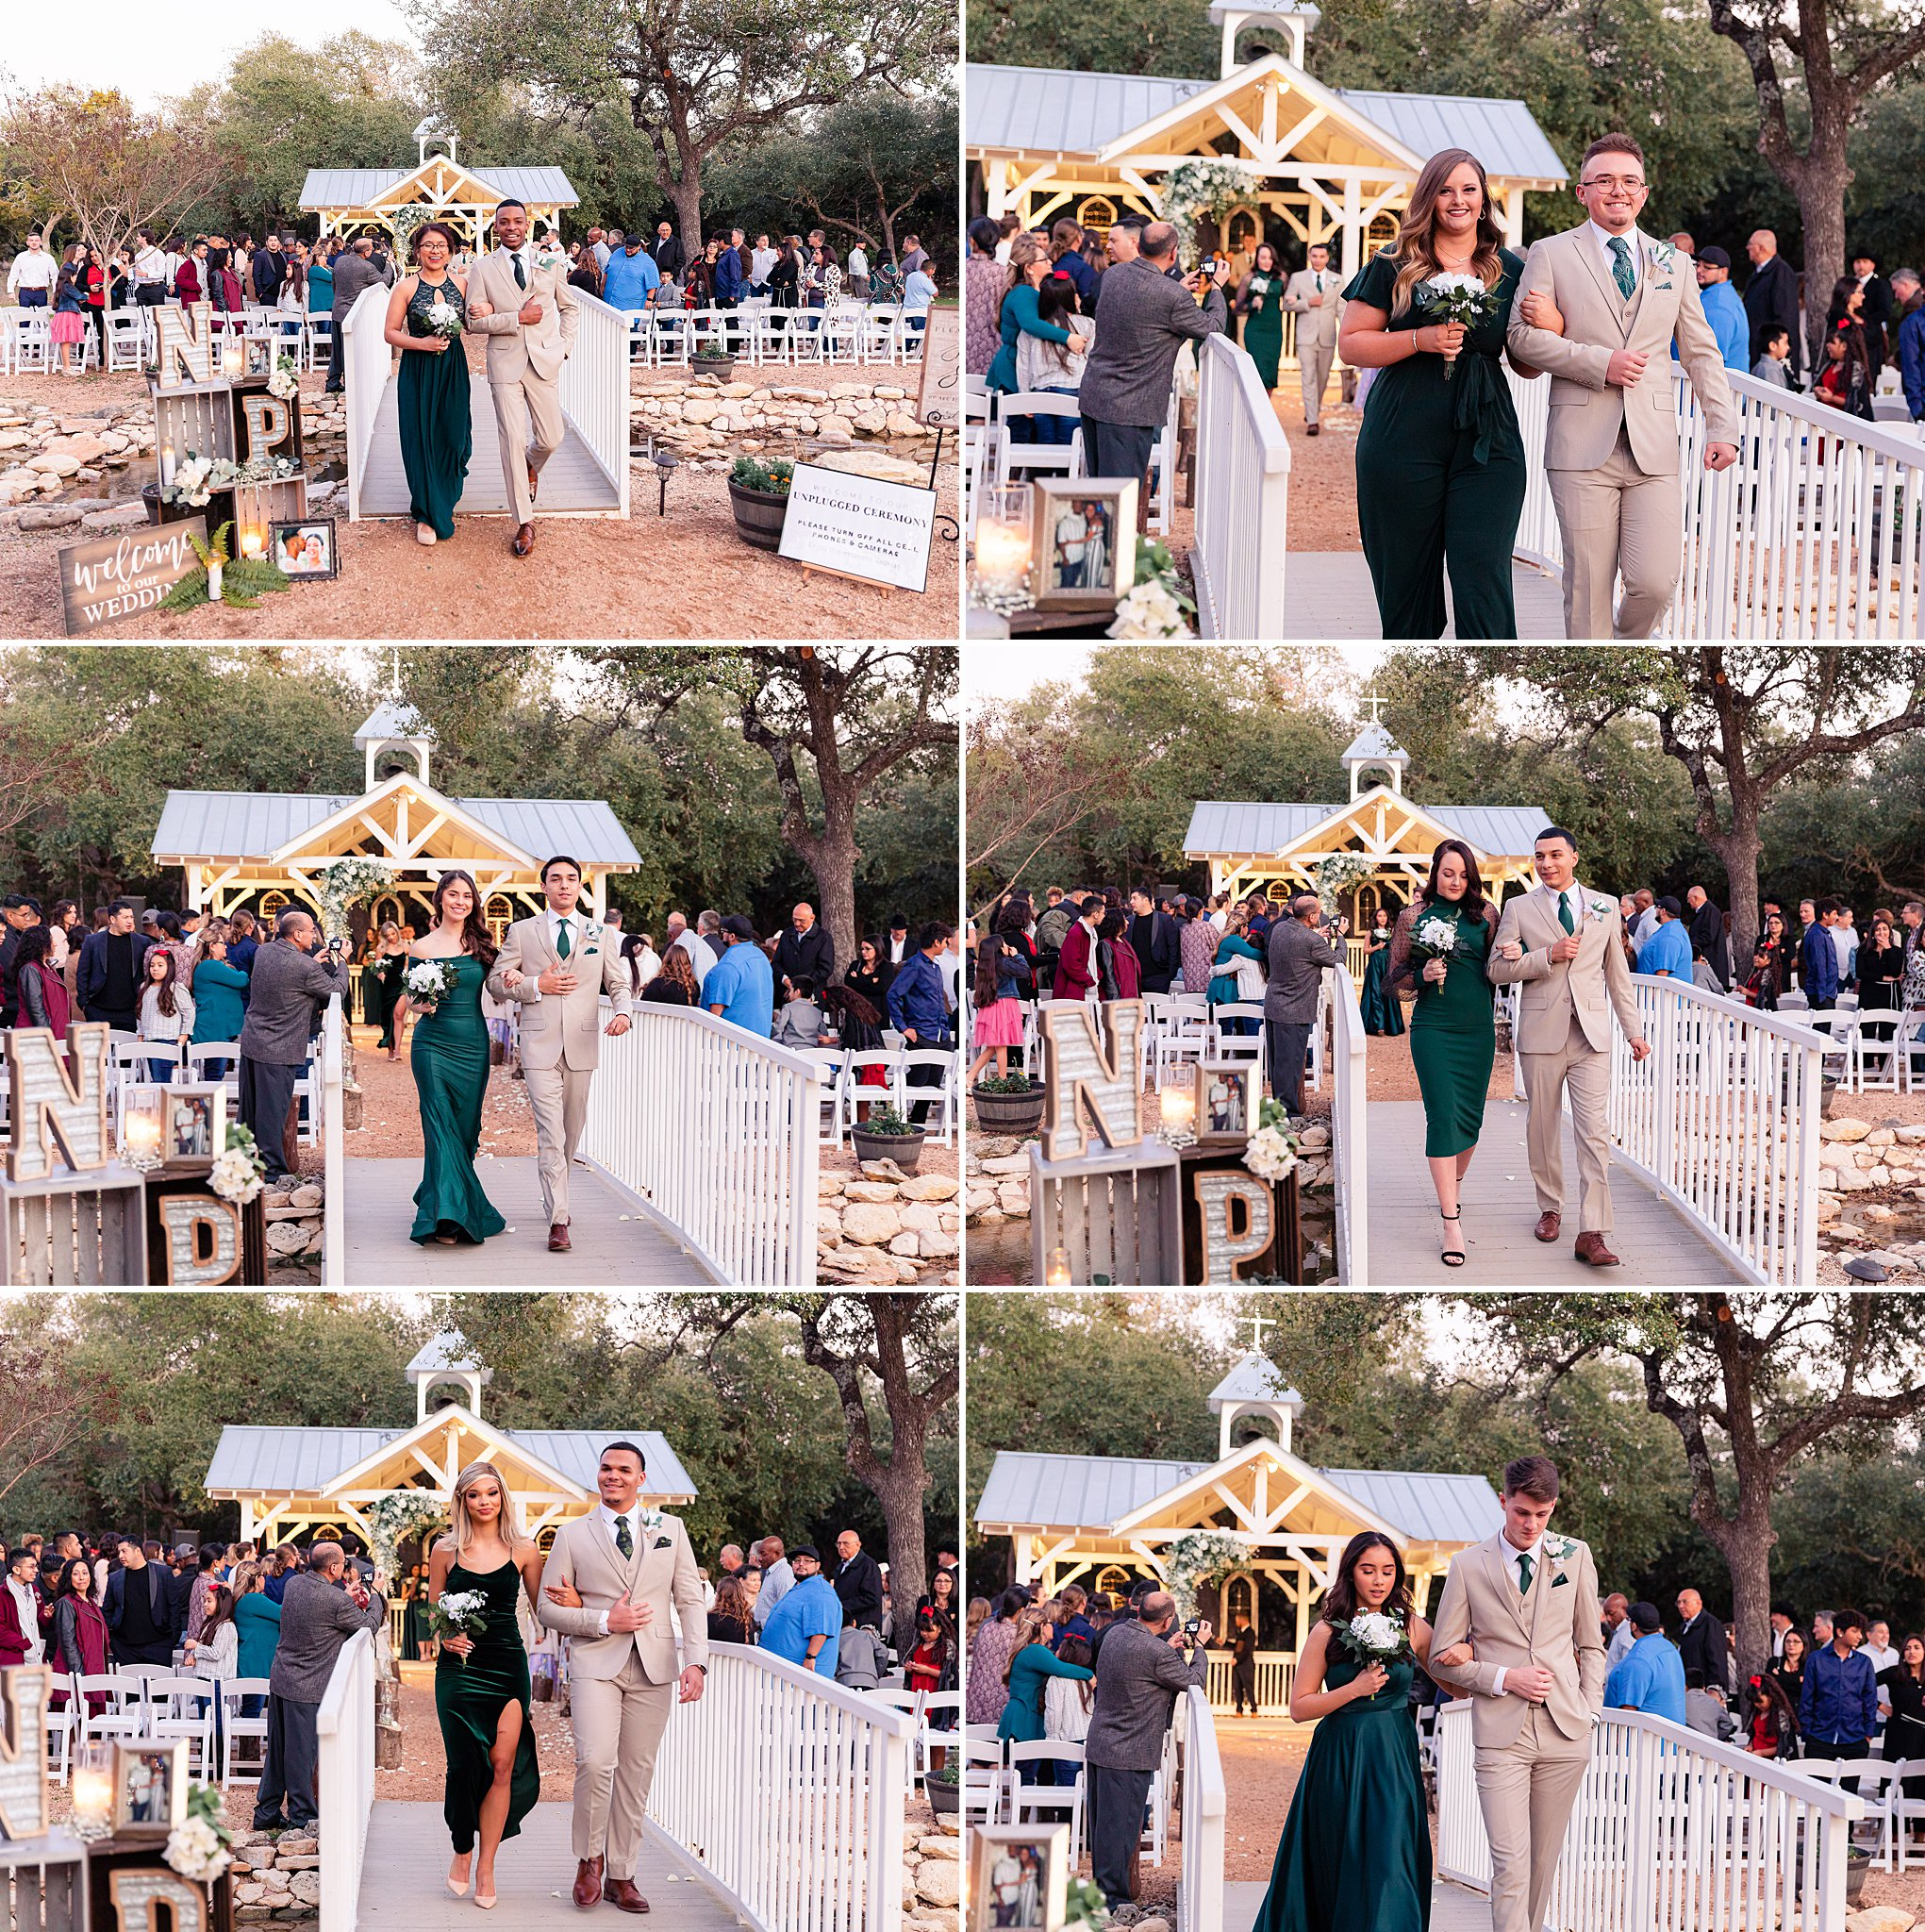 Carly-Barton-Photography-Texas-Wedding-Photographer-Western-Sky-Wedding-Event-Venue-Emerald-Green-Theme_0025.jpg